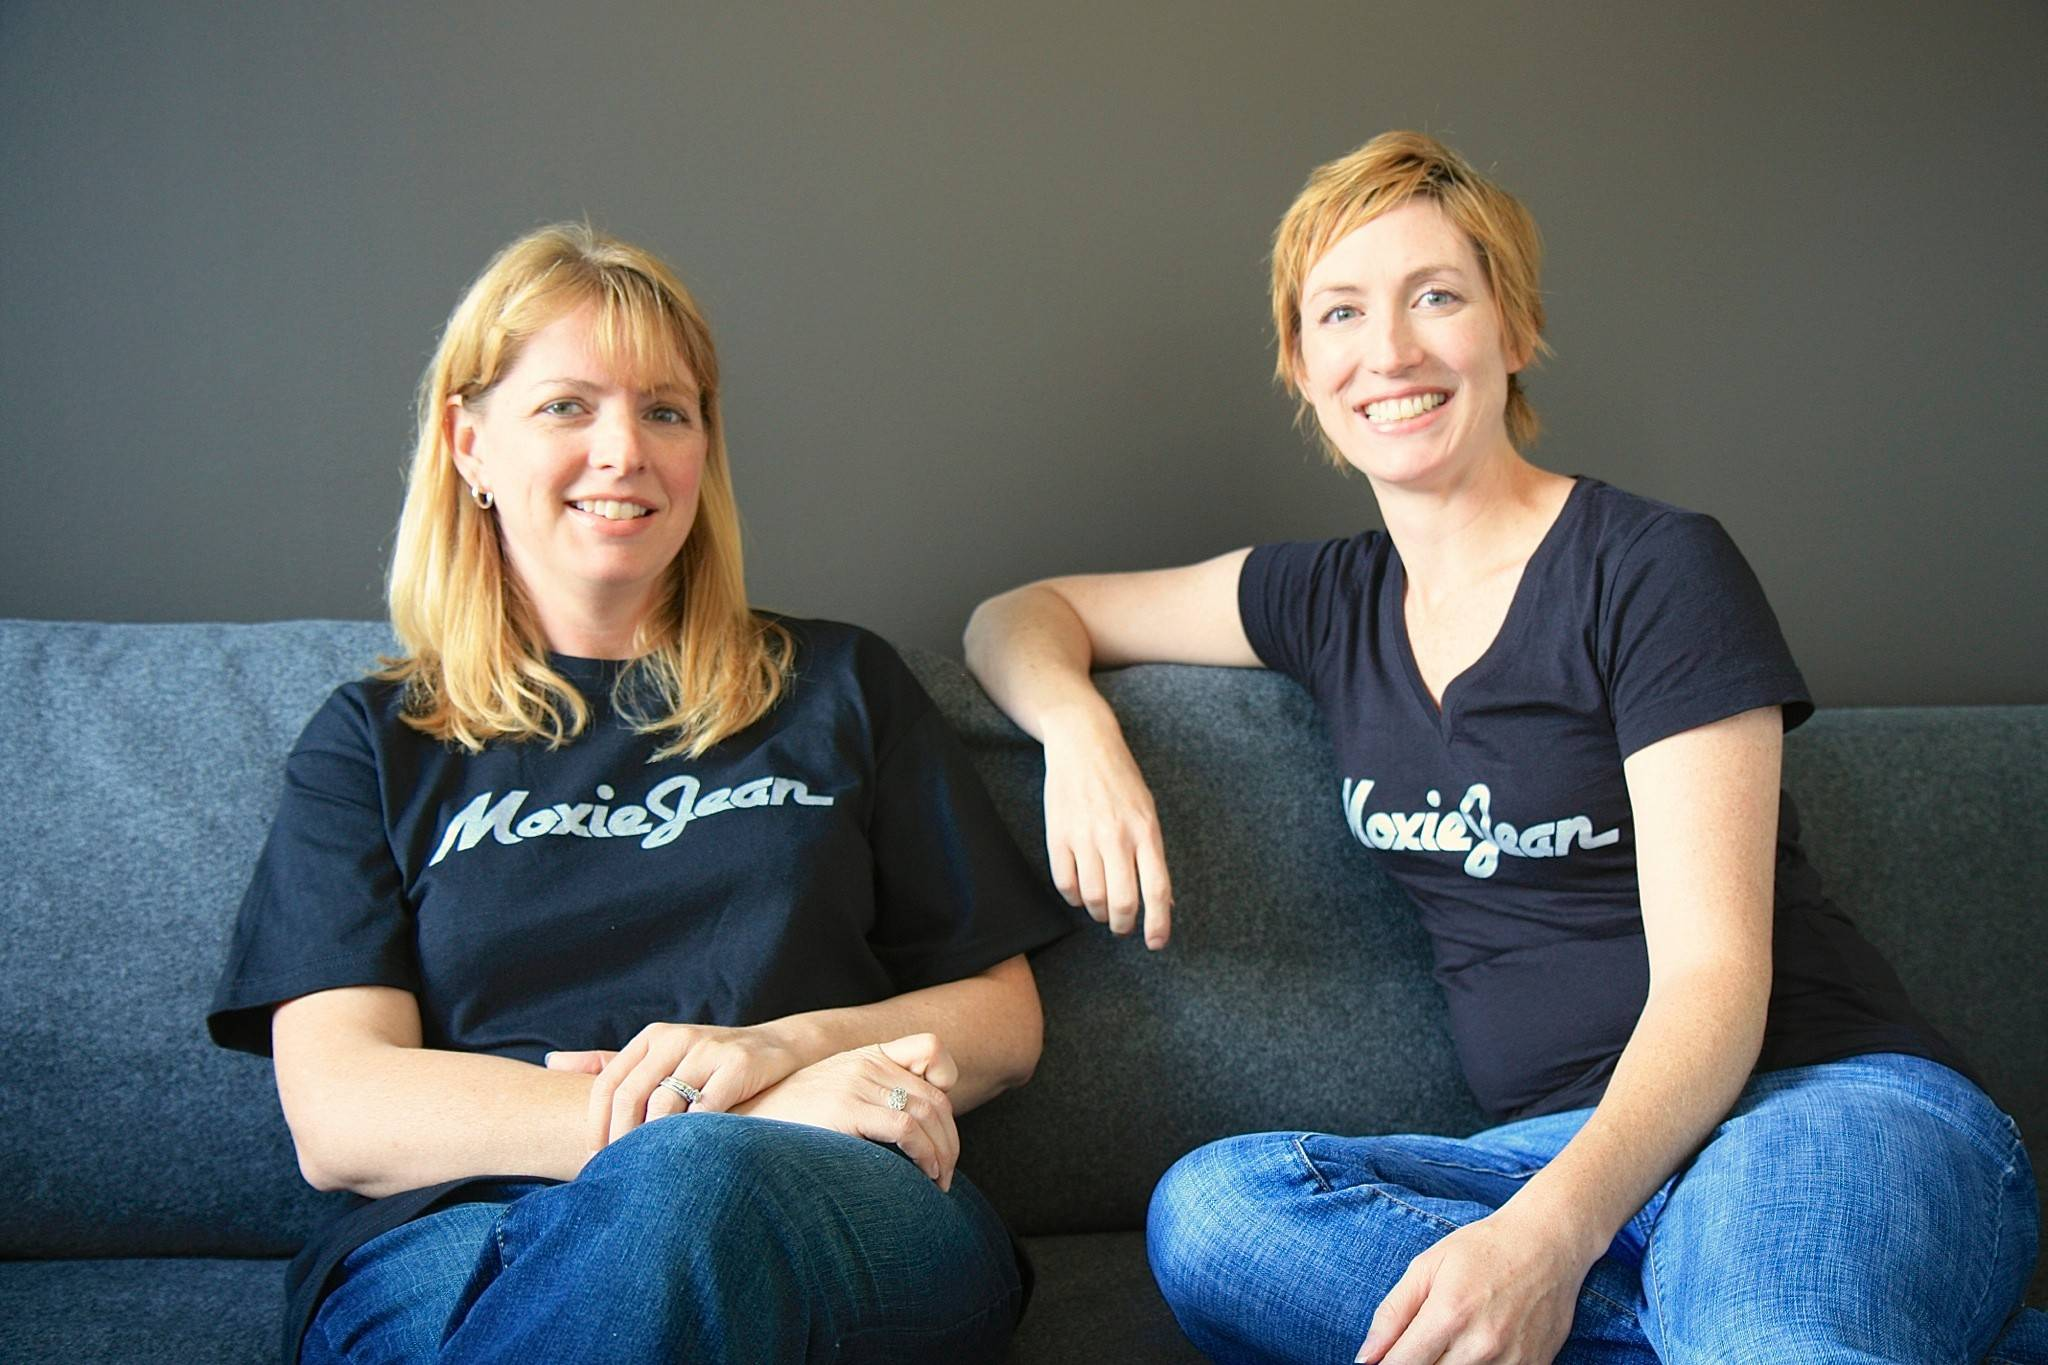 Sisters and co-founders of e-commerce site, Moxie Jean, are Sandra Pinter, at left, and Sharon Schneider. They each live in Mount Prospect and the resale site is based in Arlington Heights.